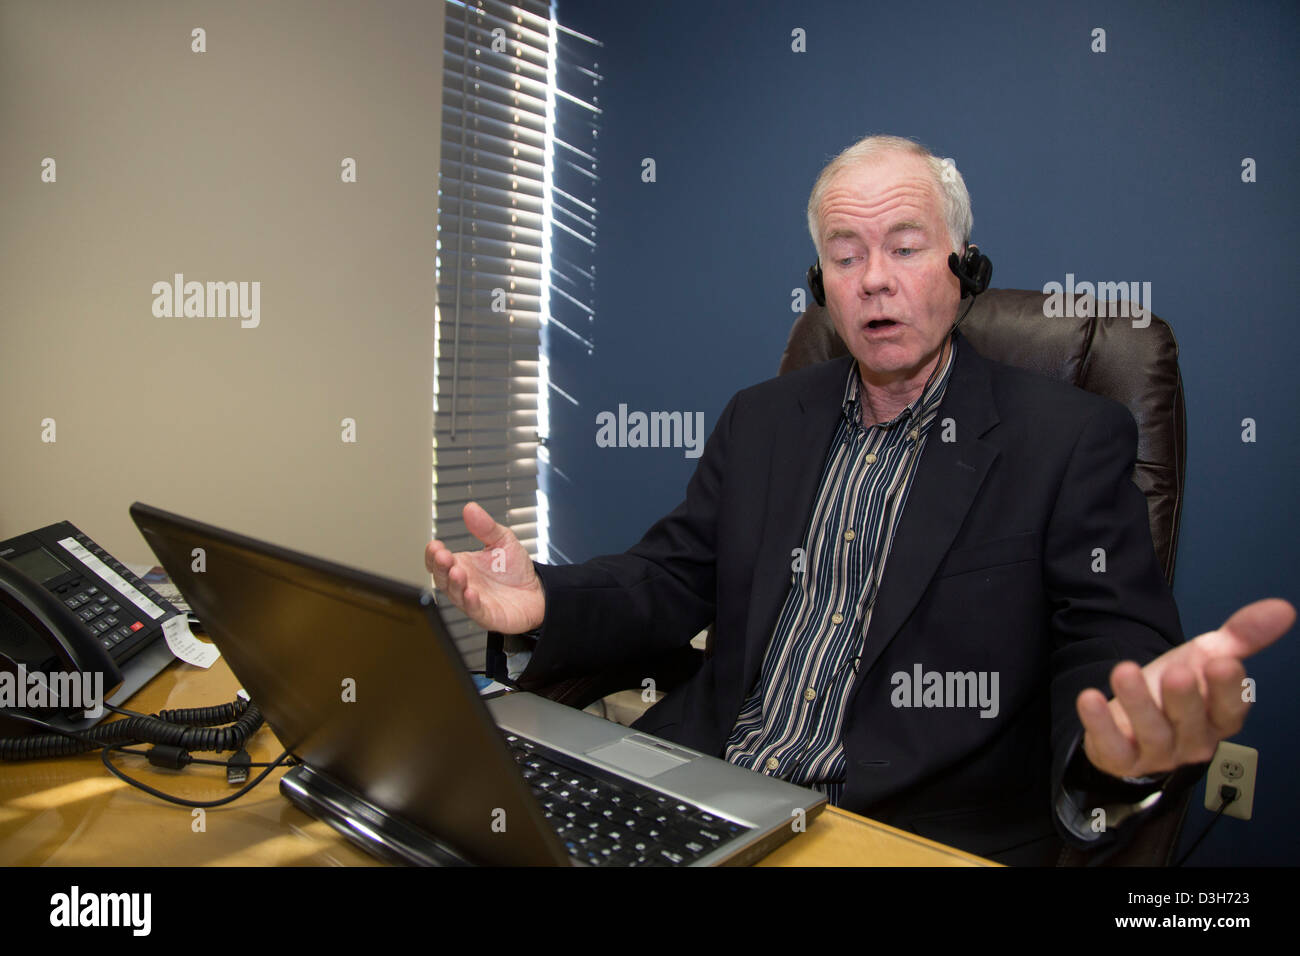 Auto industry analyst John McElroy records a radio broadcast - Stock Image